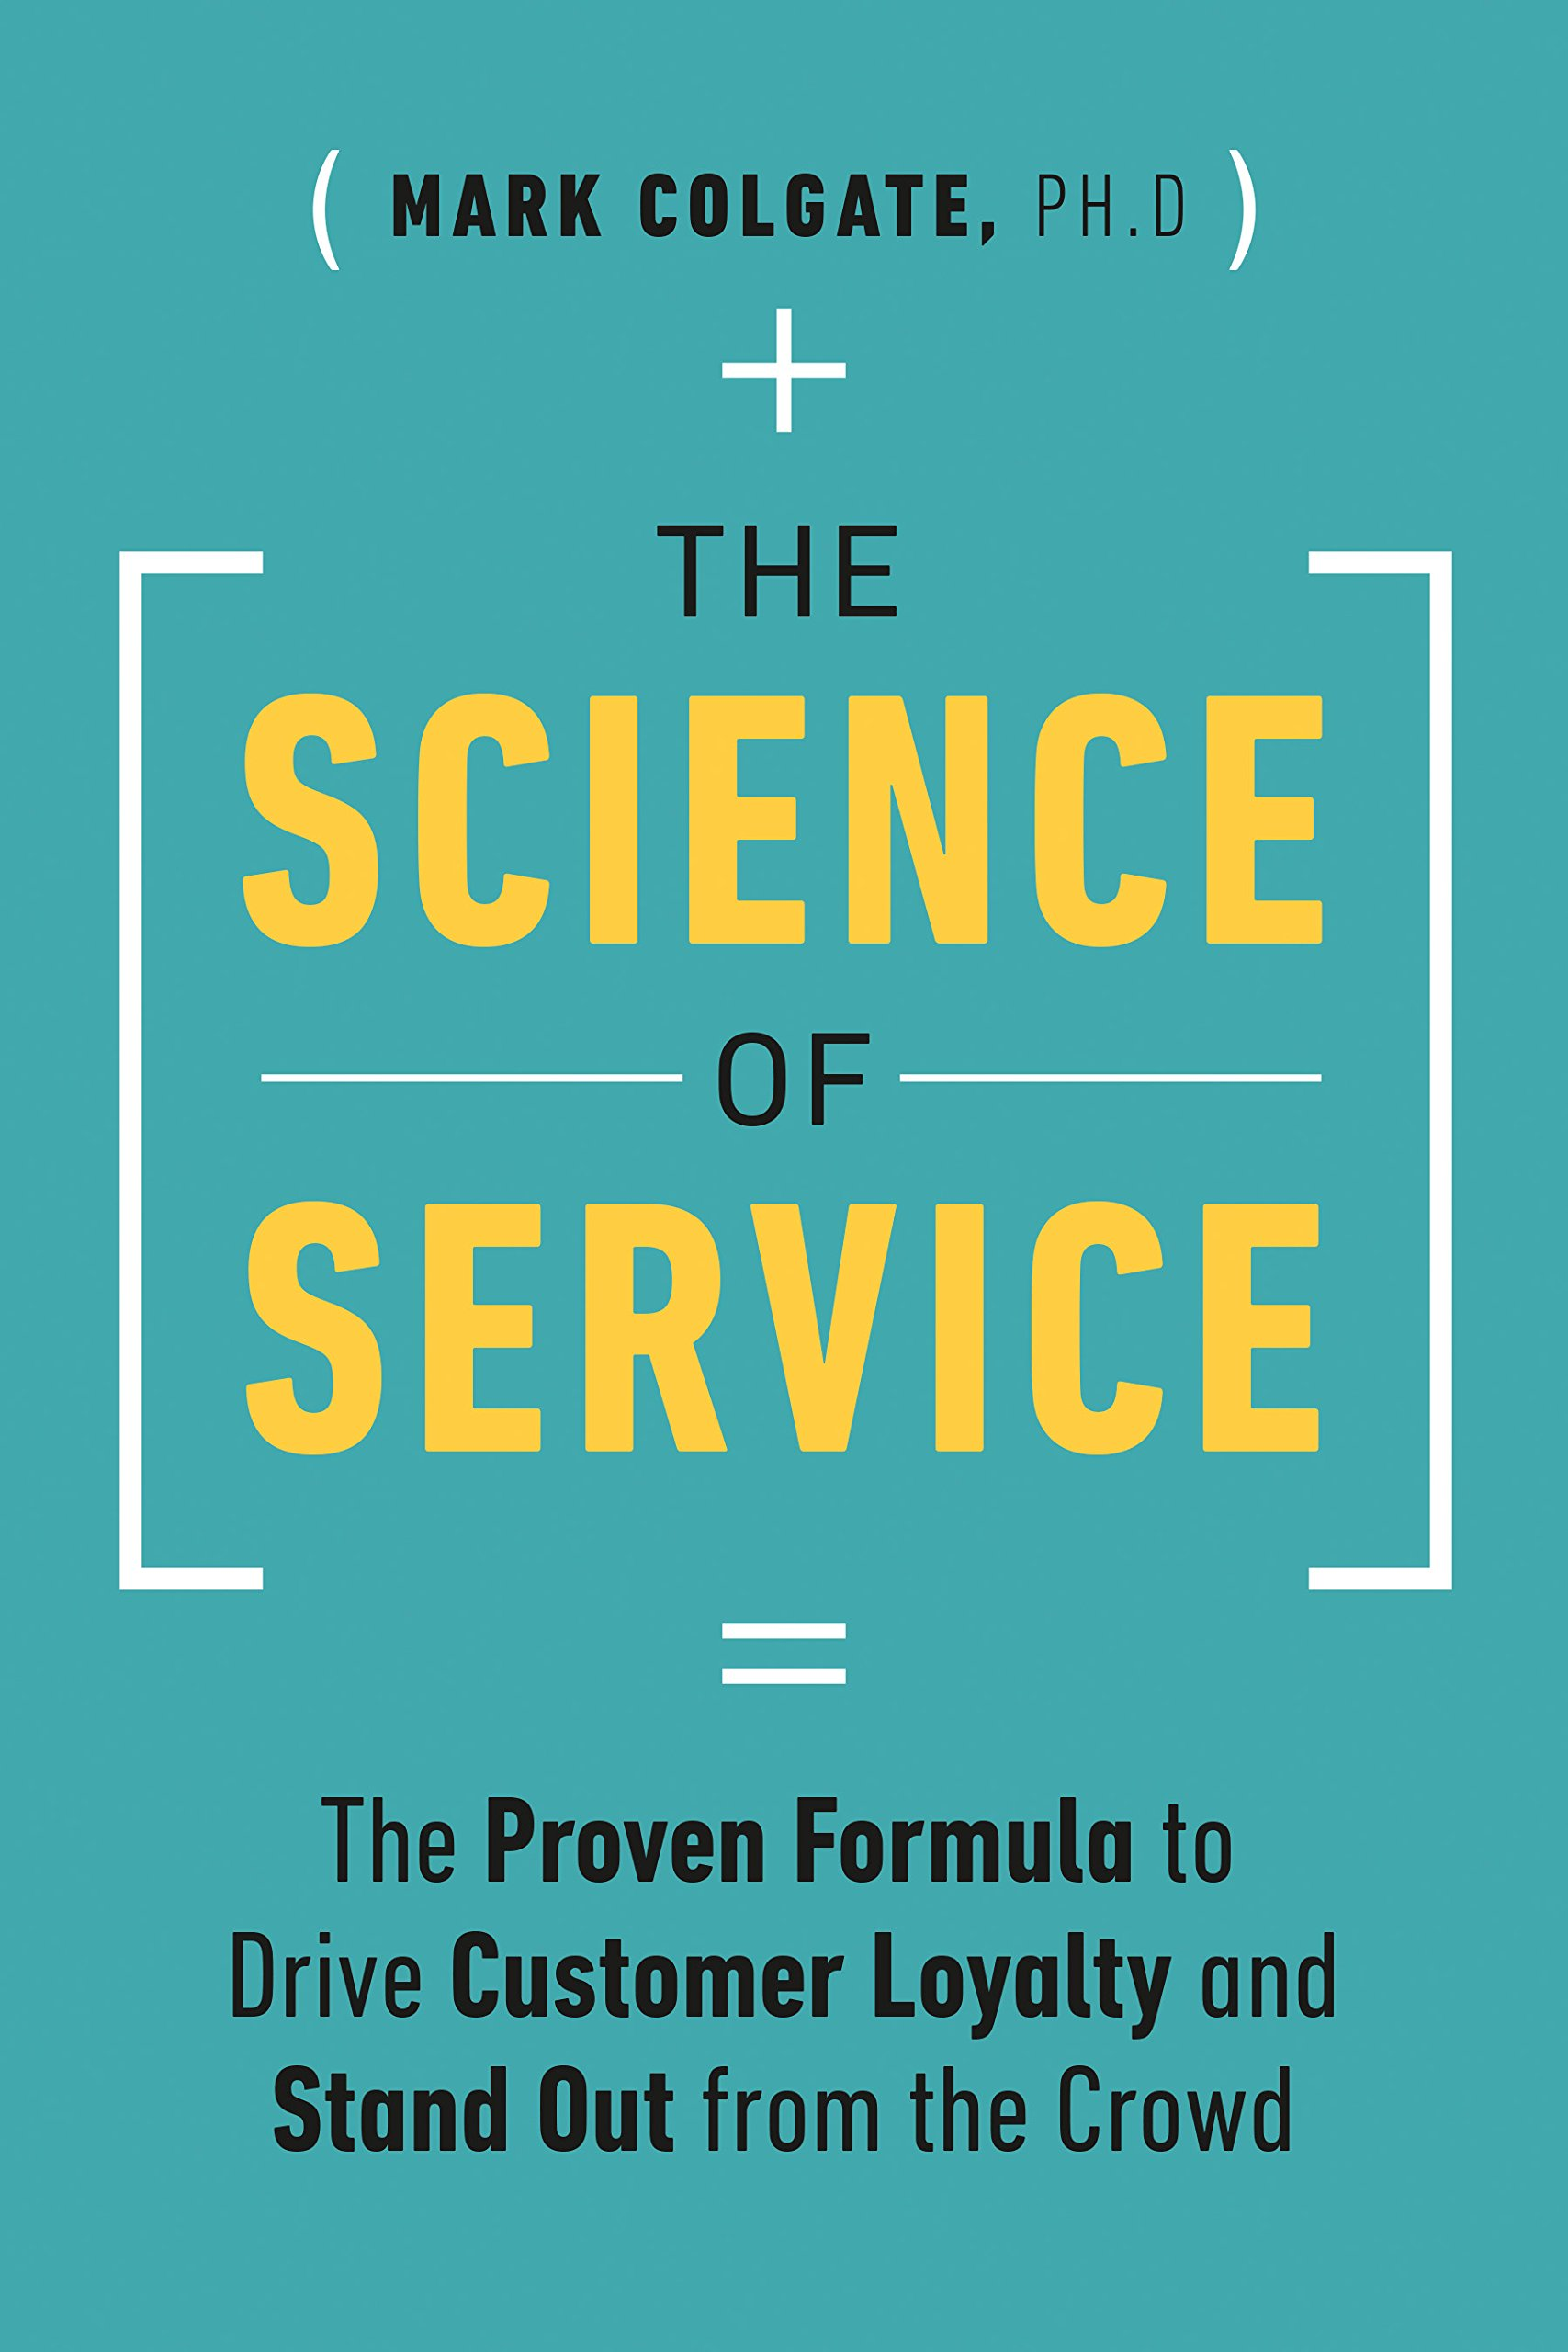 The Science of Service: The Proven Formula to Drive Customer Loyalty and Stand Out from the Crowd